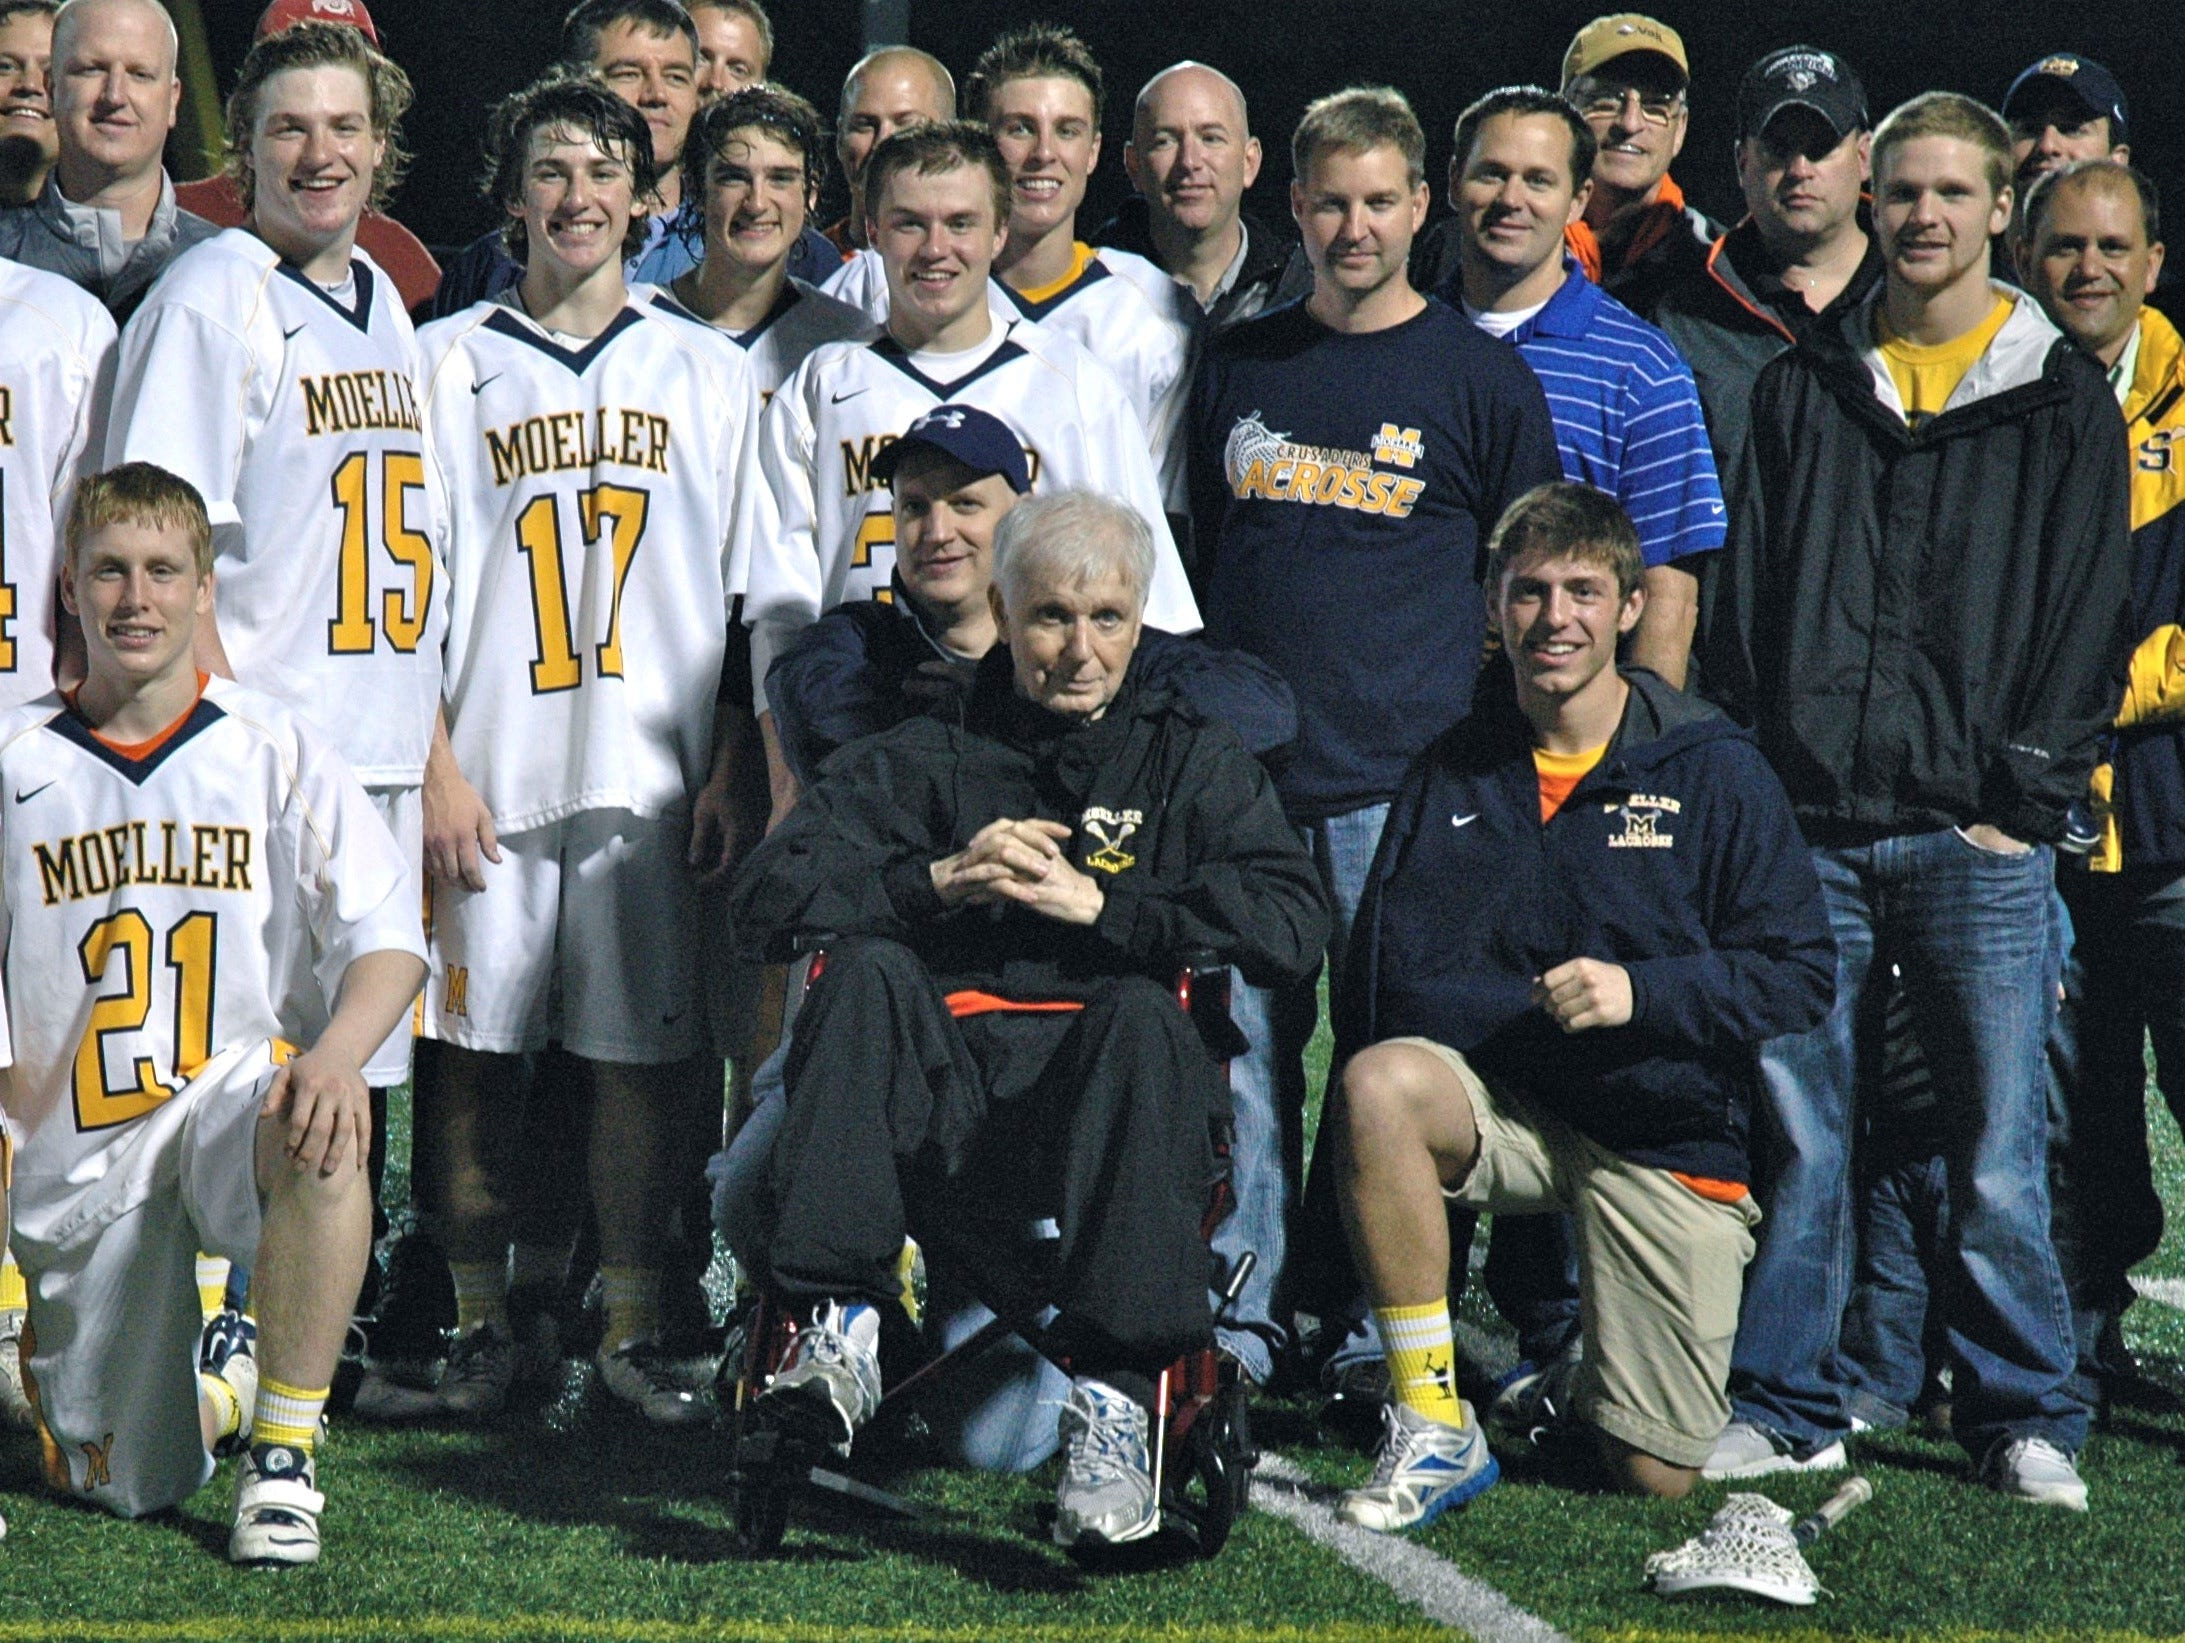 Tom Kennedy, surrounded by lacrosse players, family and friends, died in January. The Moeller lacrosse team will honor him May 9.